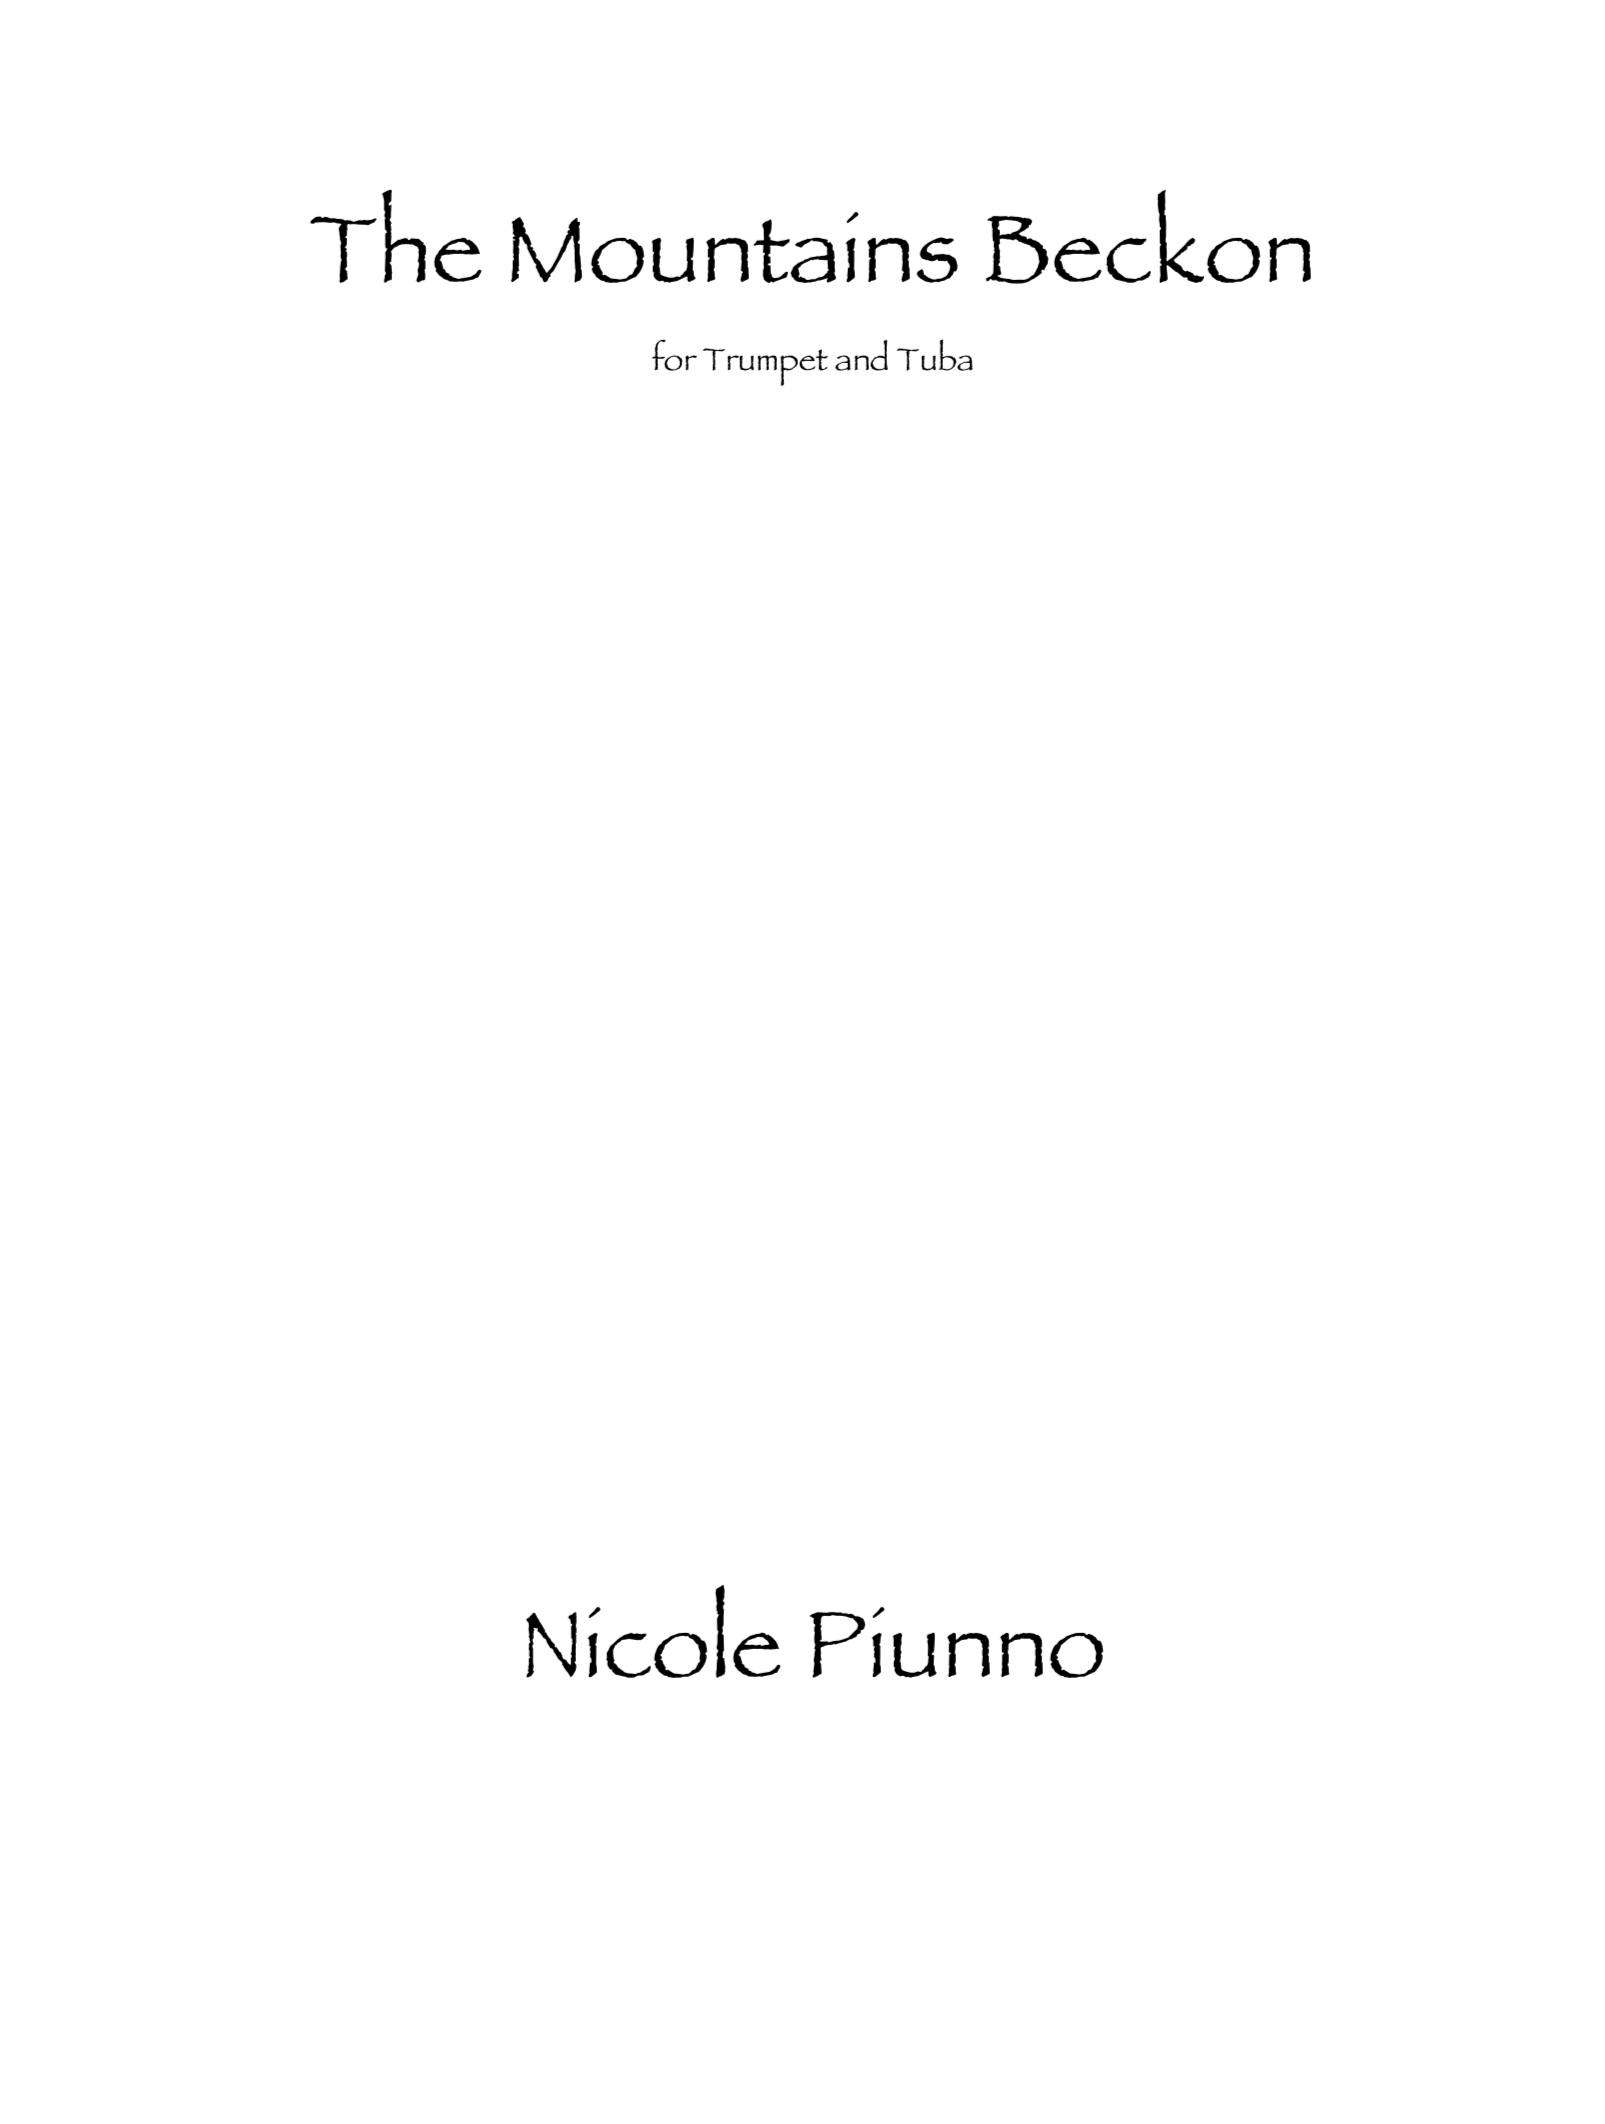 The Mountains Beckon by Nicole Piunno